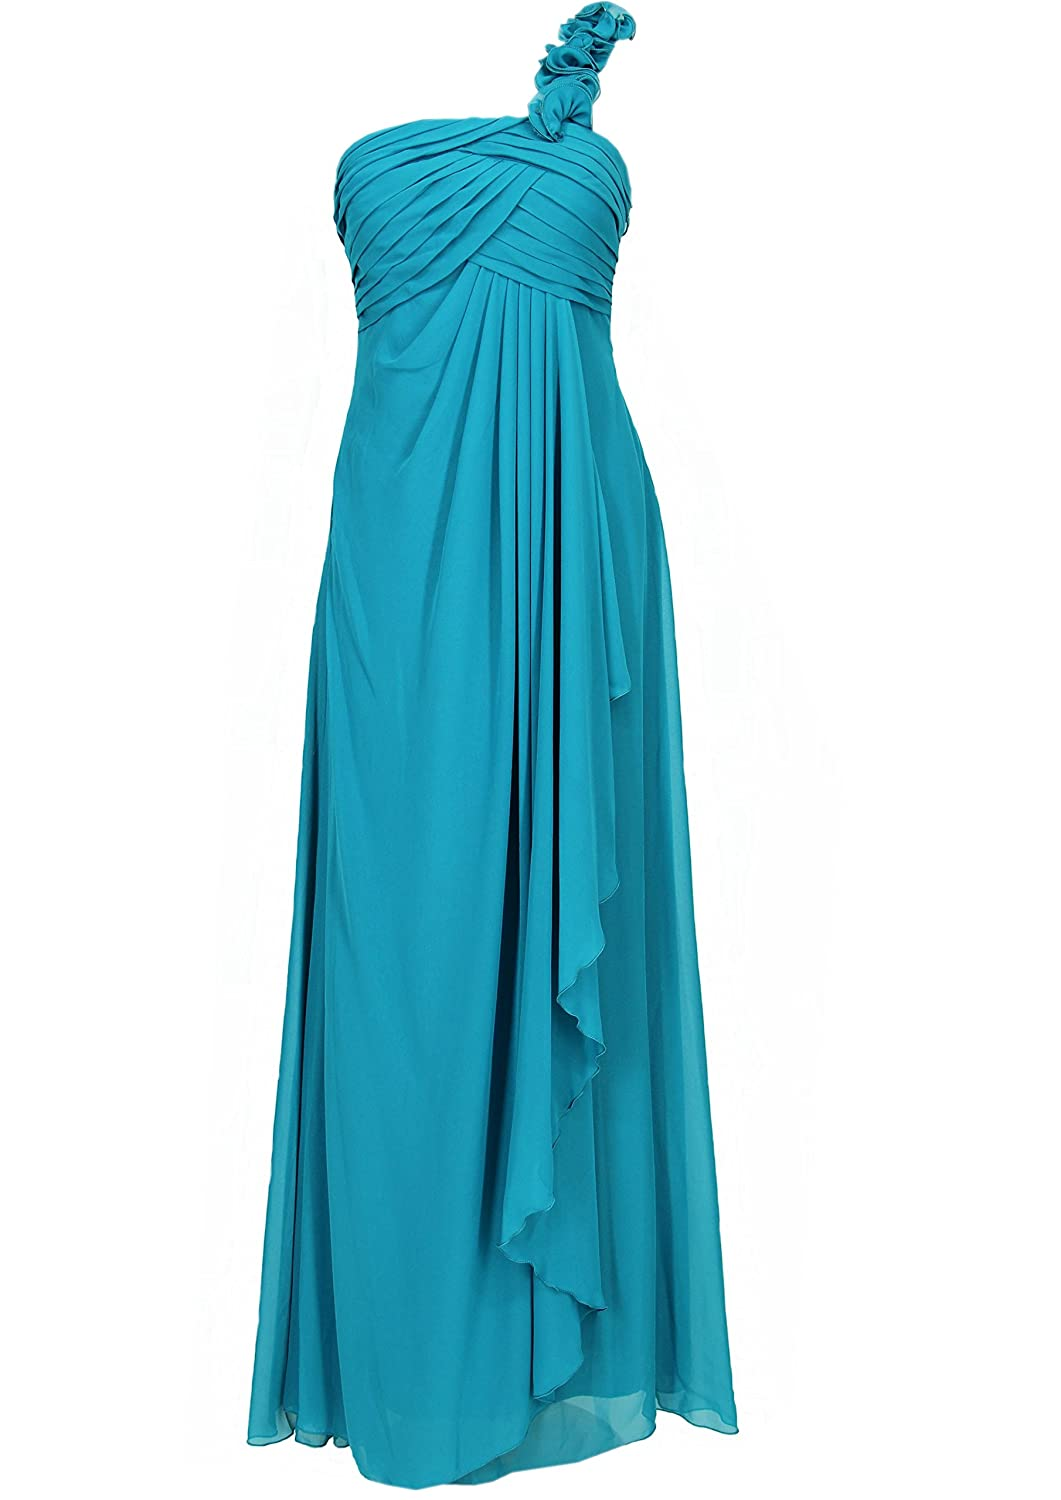 JuJu & Christine Langes Damen Chiffon Abendkleid (A2071) one shoulder vers. Farben Gr. 34 - 50